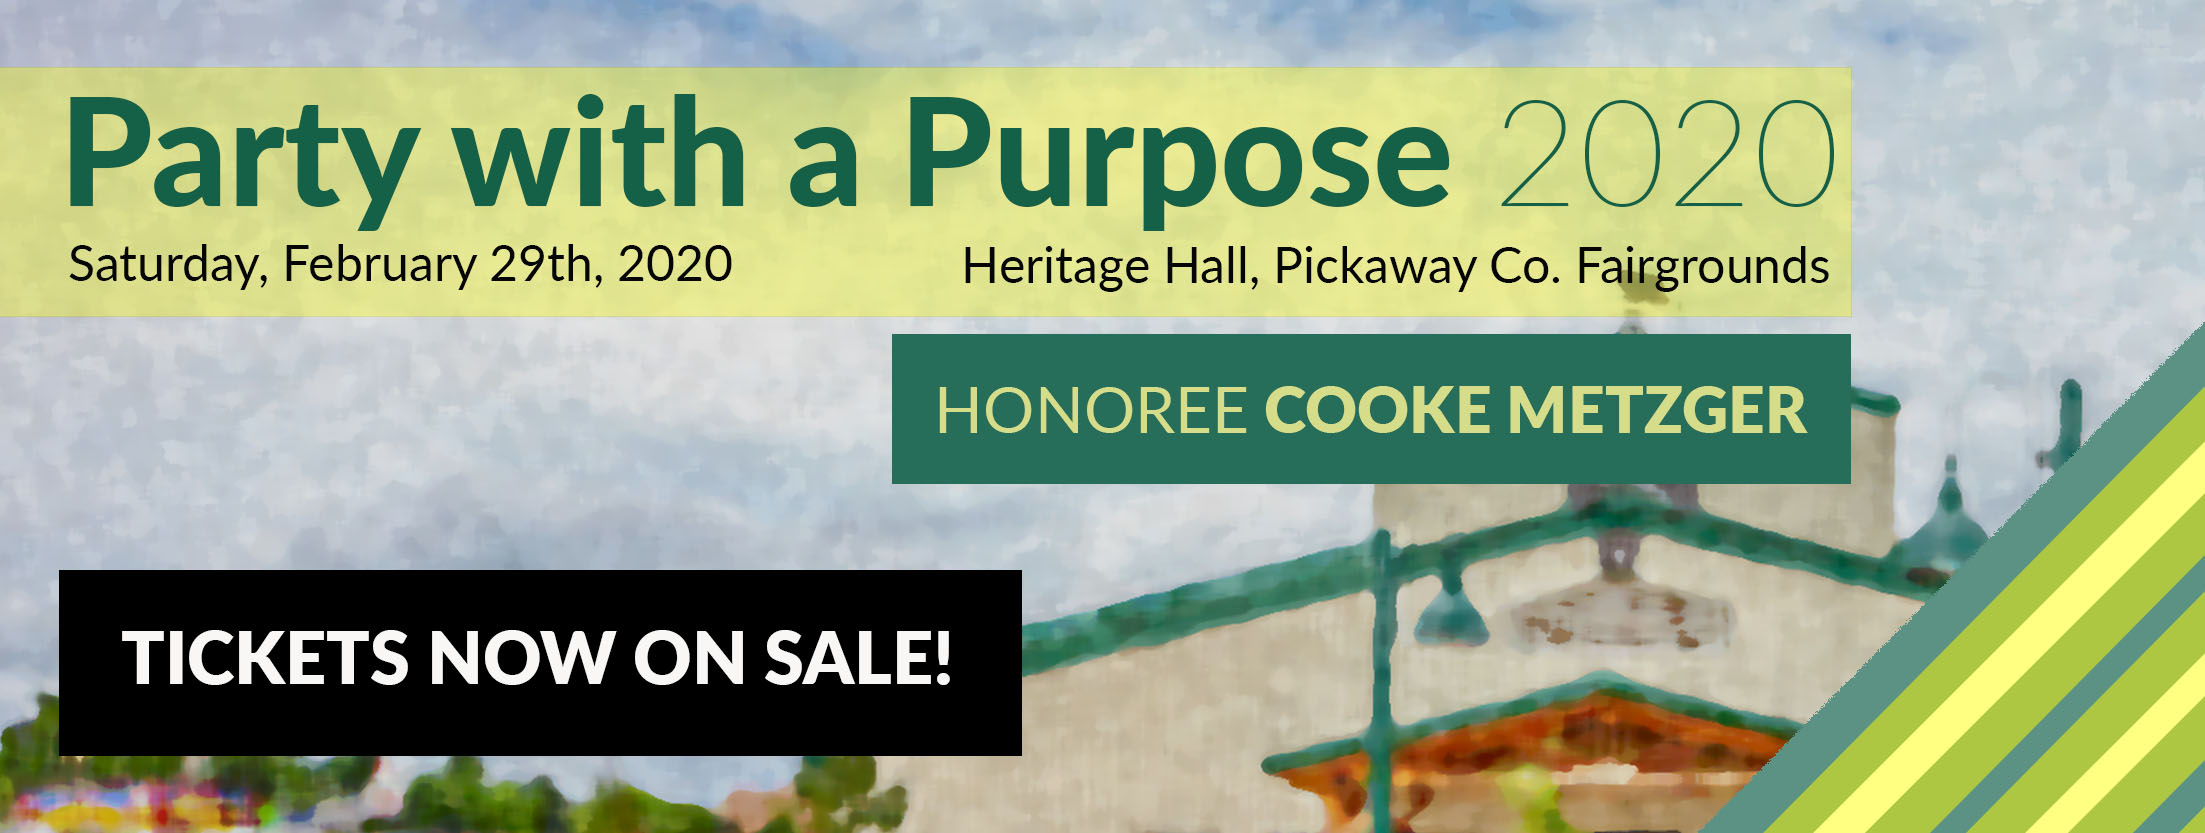 Party with a Purpose 2020 Tickets Now On Sale